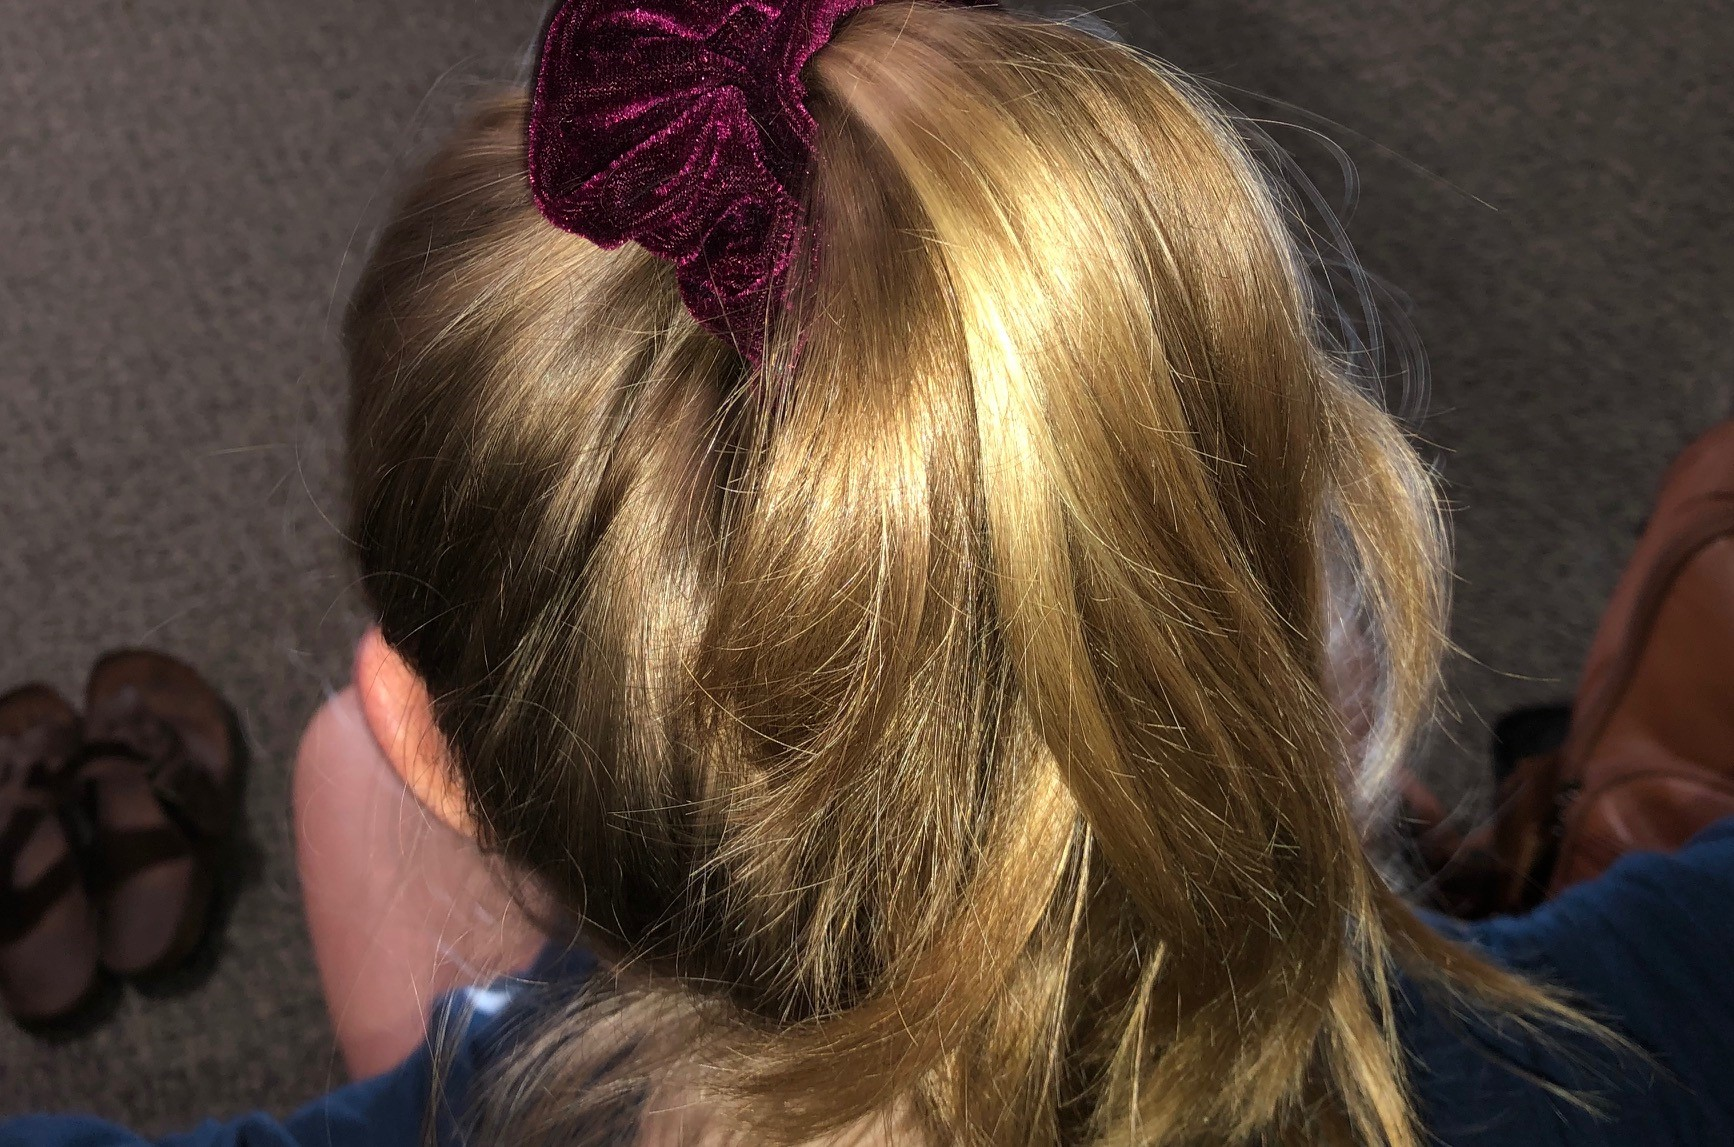 blonde hair pulled back with a maroon scrunchie.